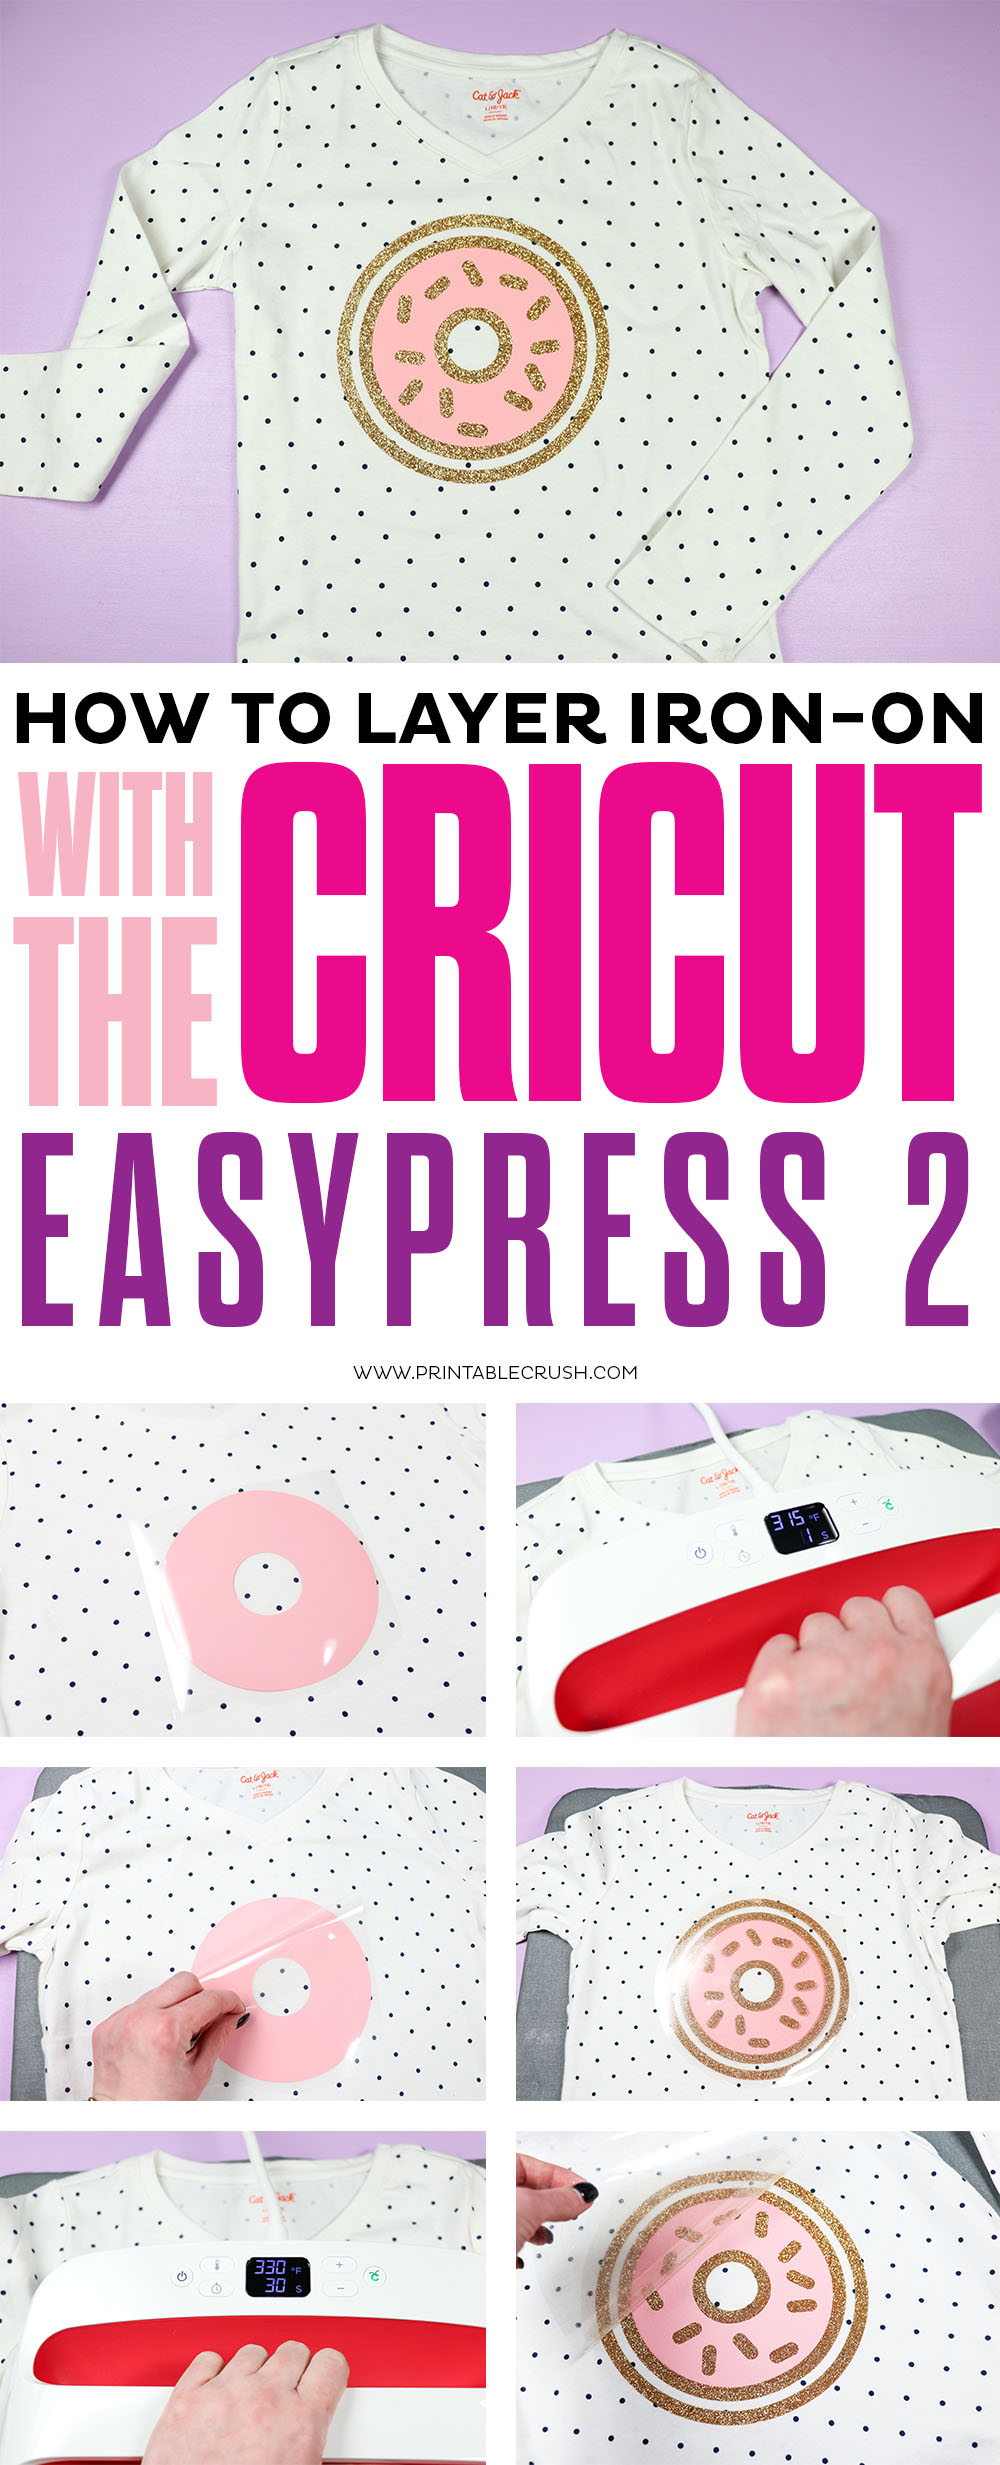 Create a layered iron-on t-shirt with the Cricut Easypress 2!